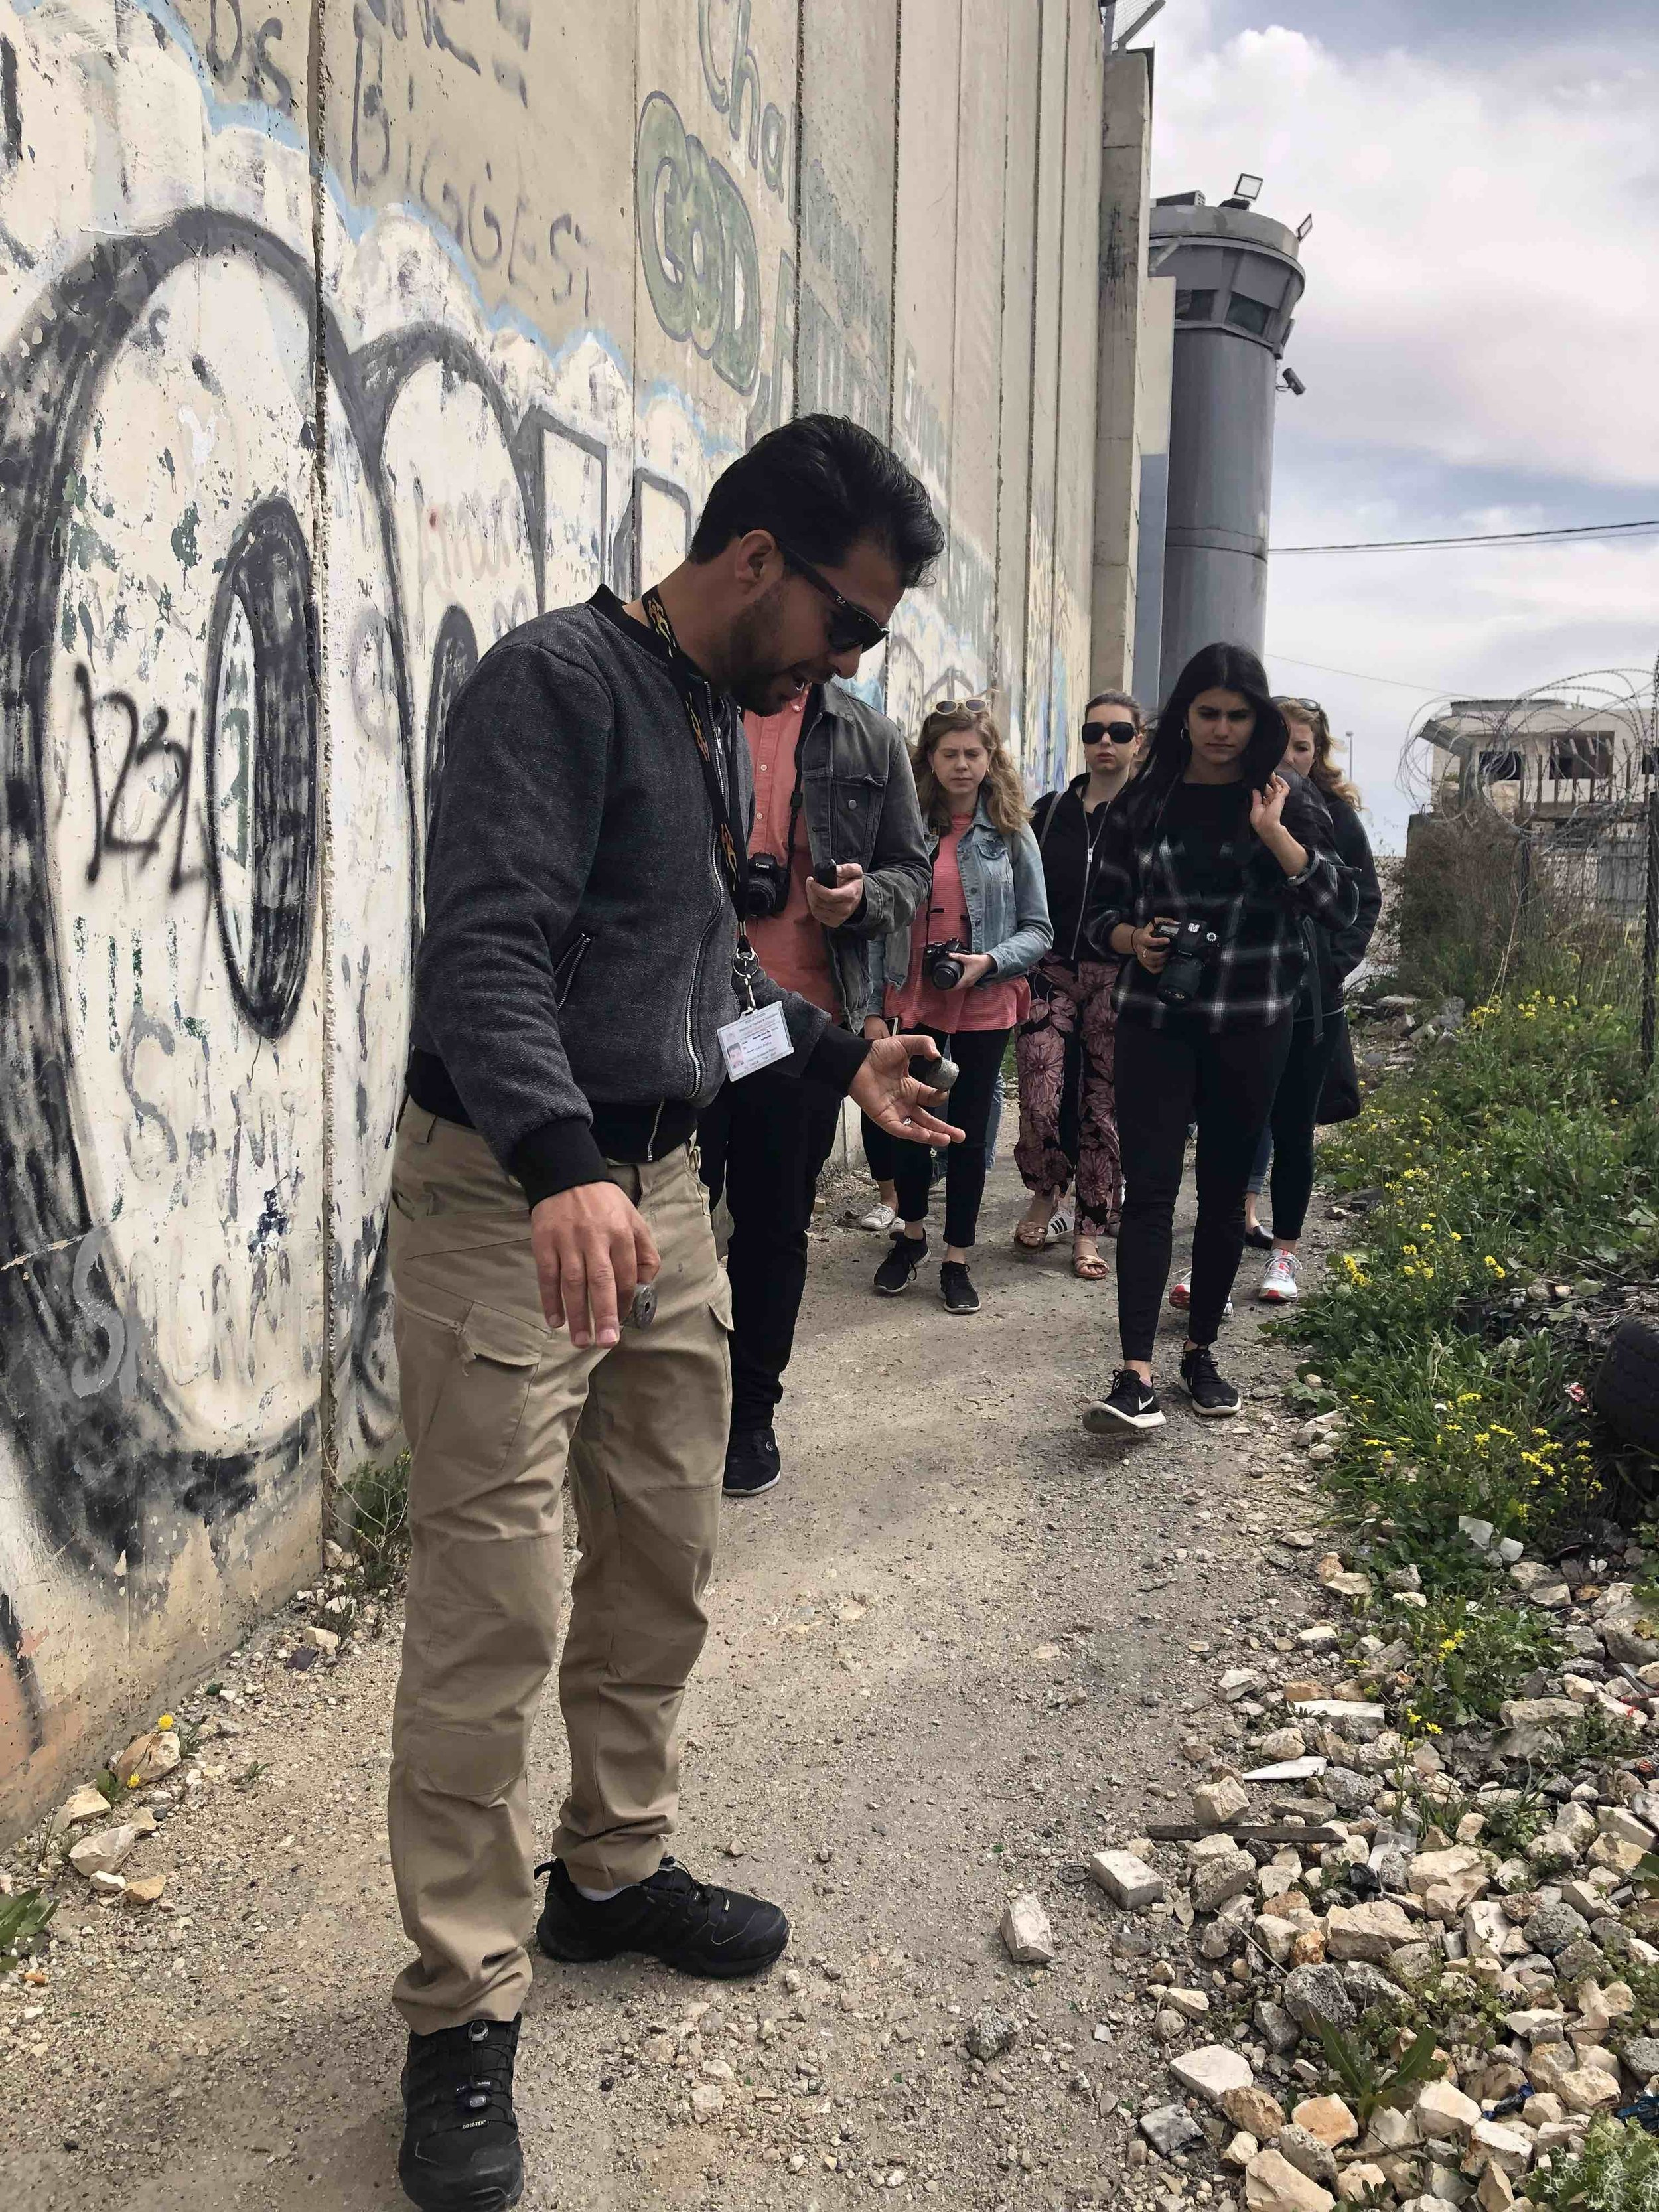 Tour guide Mustafa al Araj shows students the Palestinian side of the wall. He picked up several spent tear gas canisters.